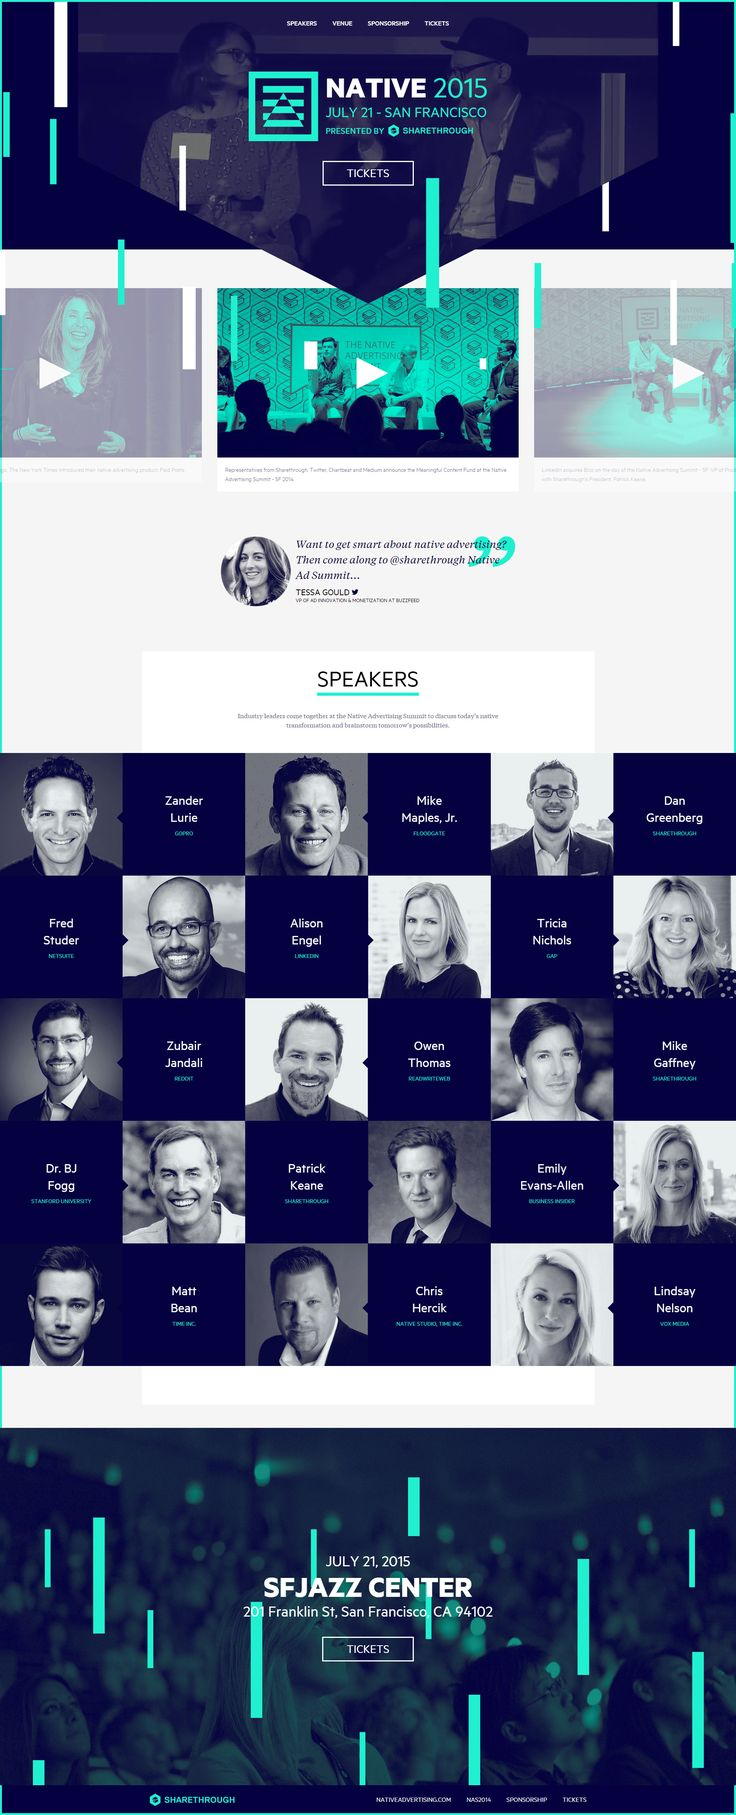 Native 2015 Conference website